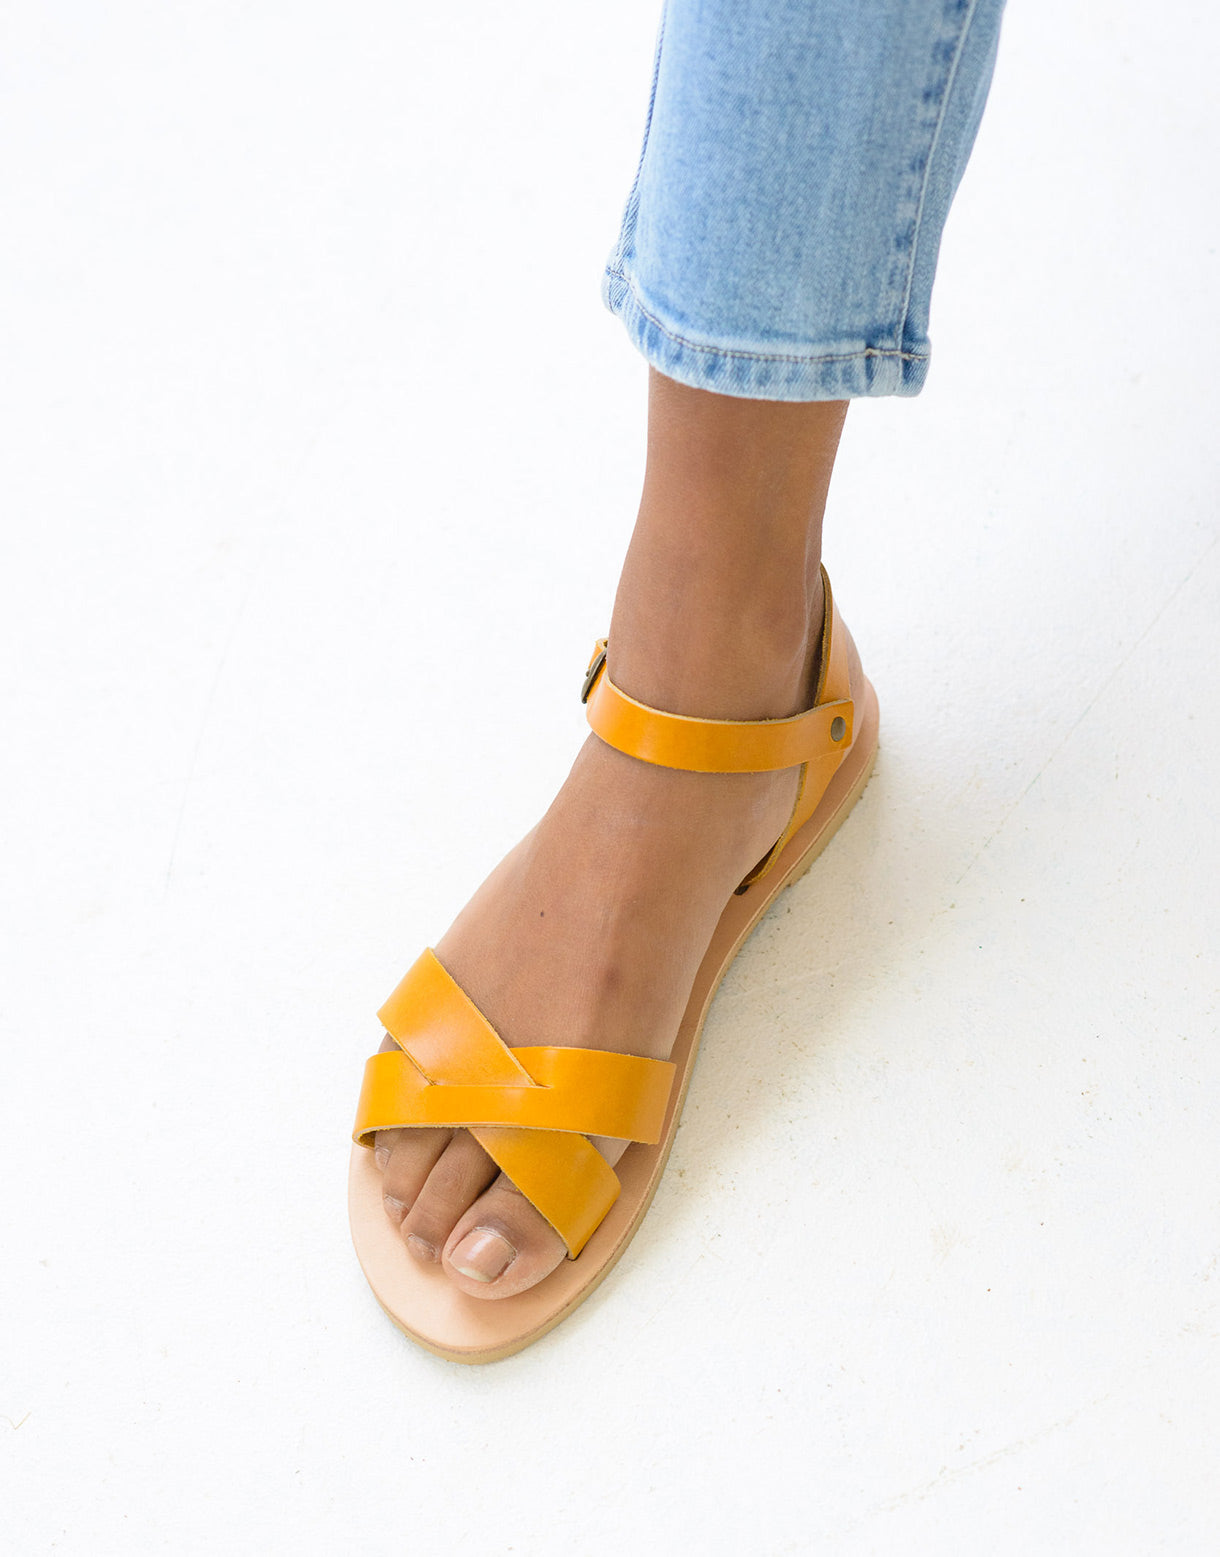 Erato Sandals in Yellow